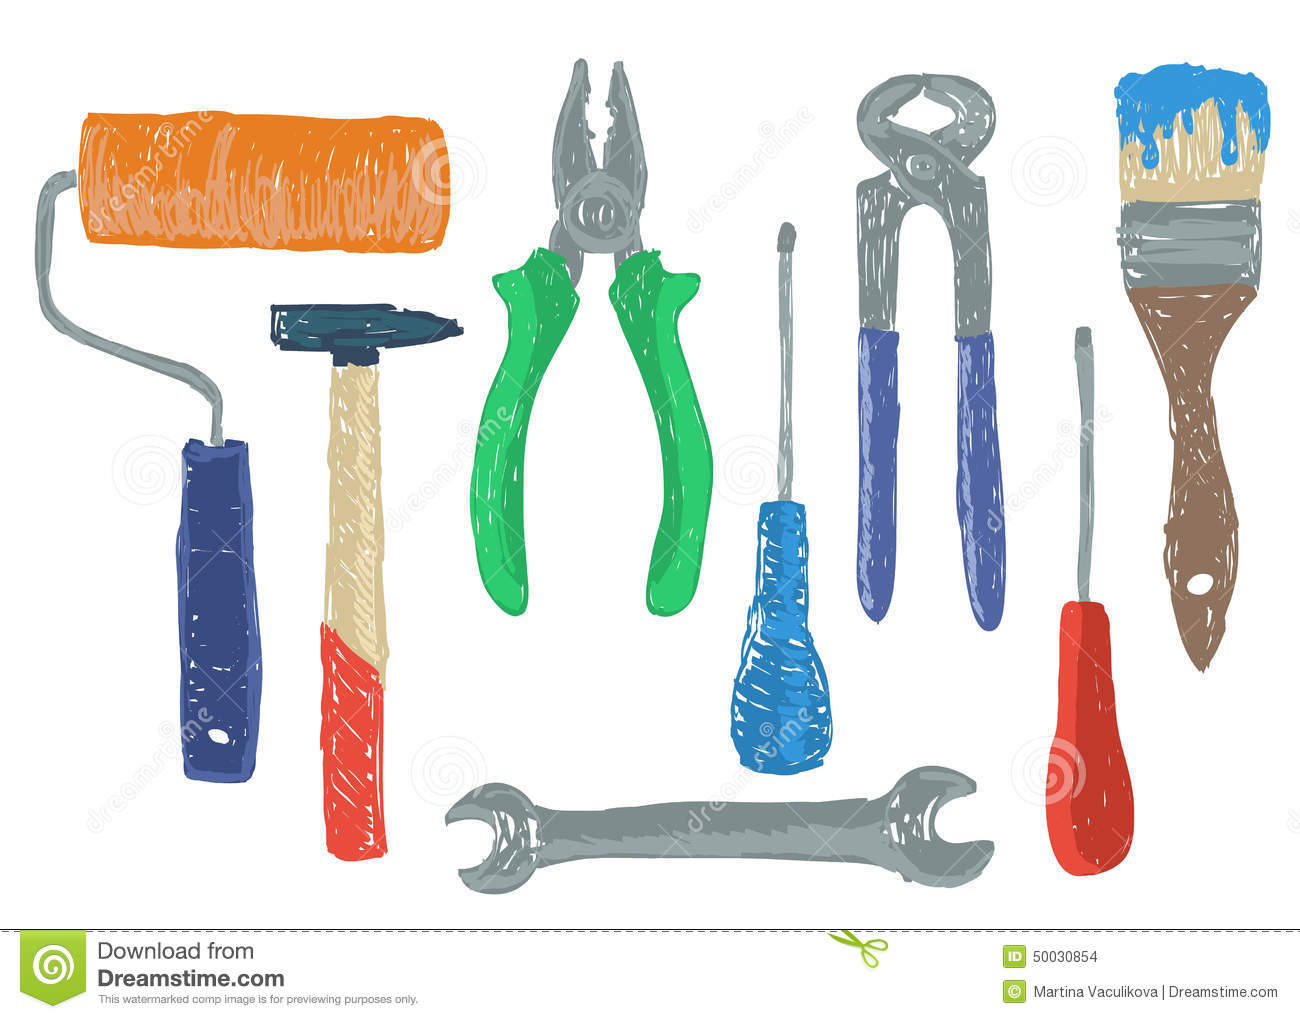 Hammer And Saw  546 Free Downloads  Vecteezy